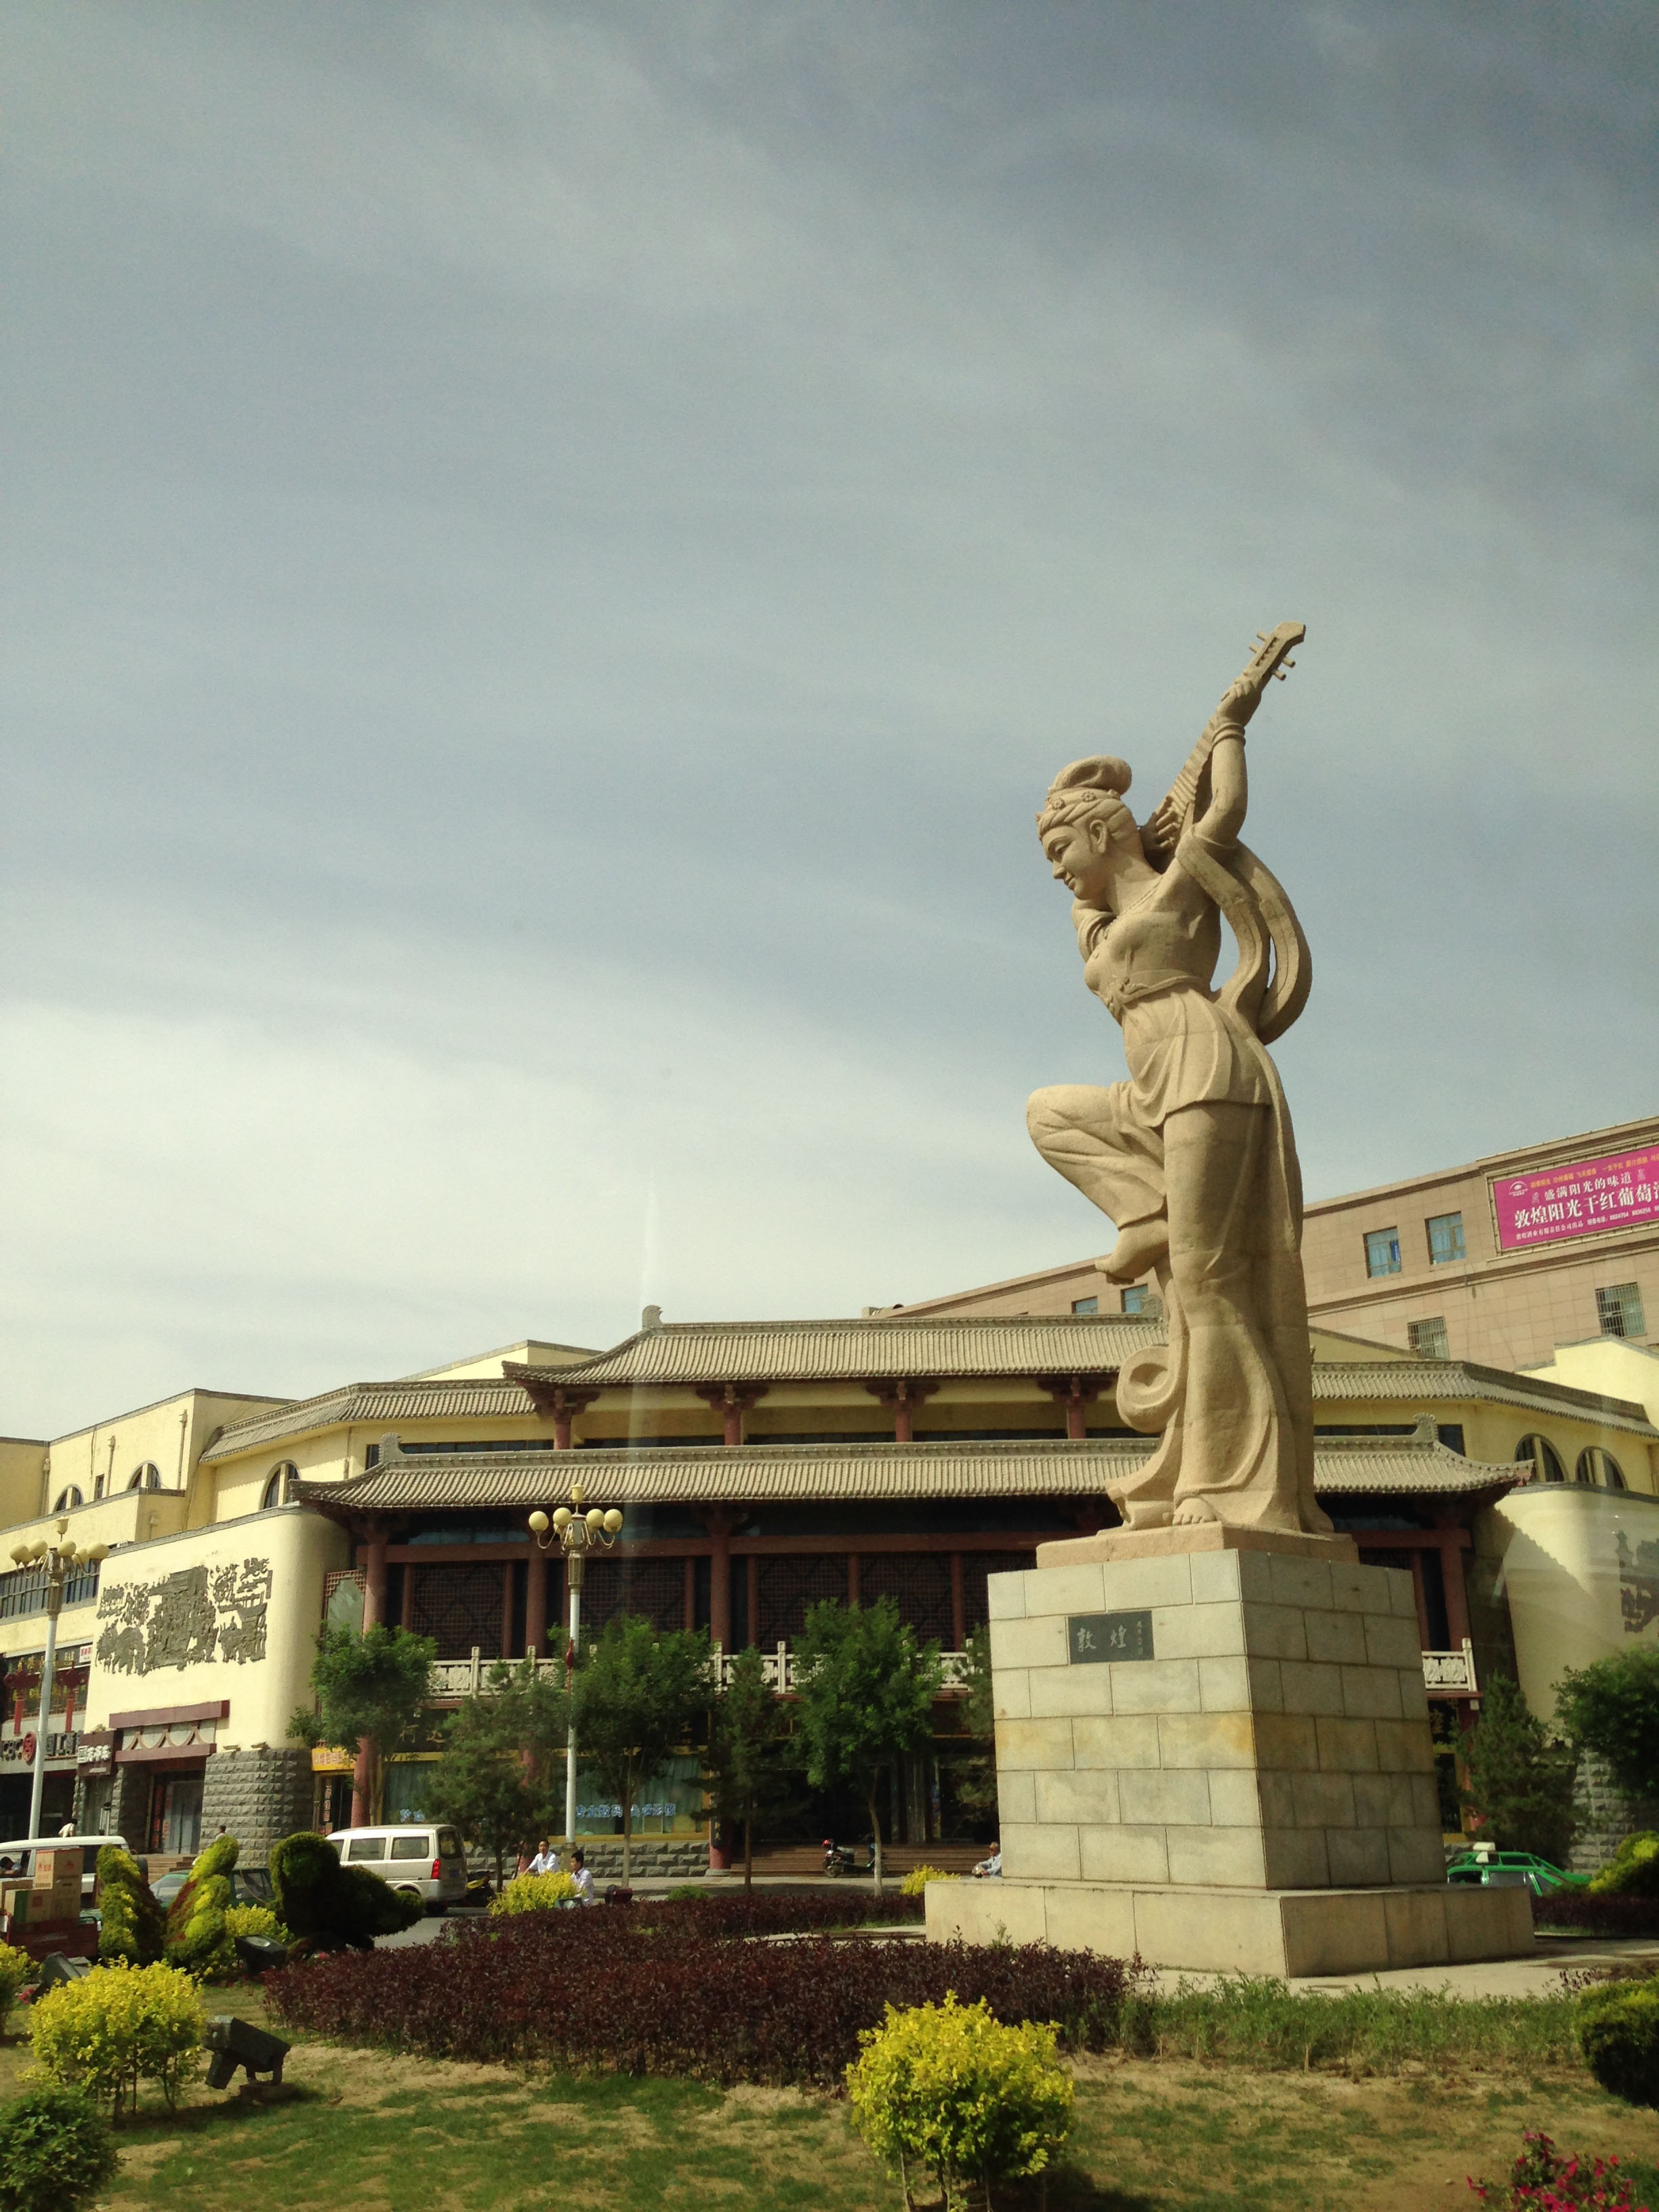 Statue representing Dunhuang in the Dunhuang town center, June 9